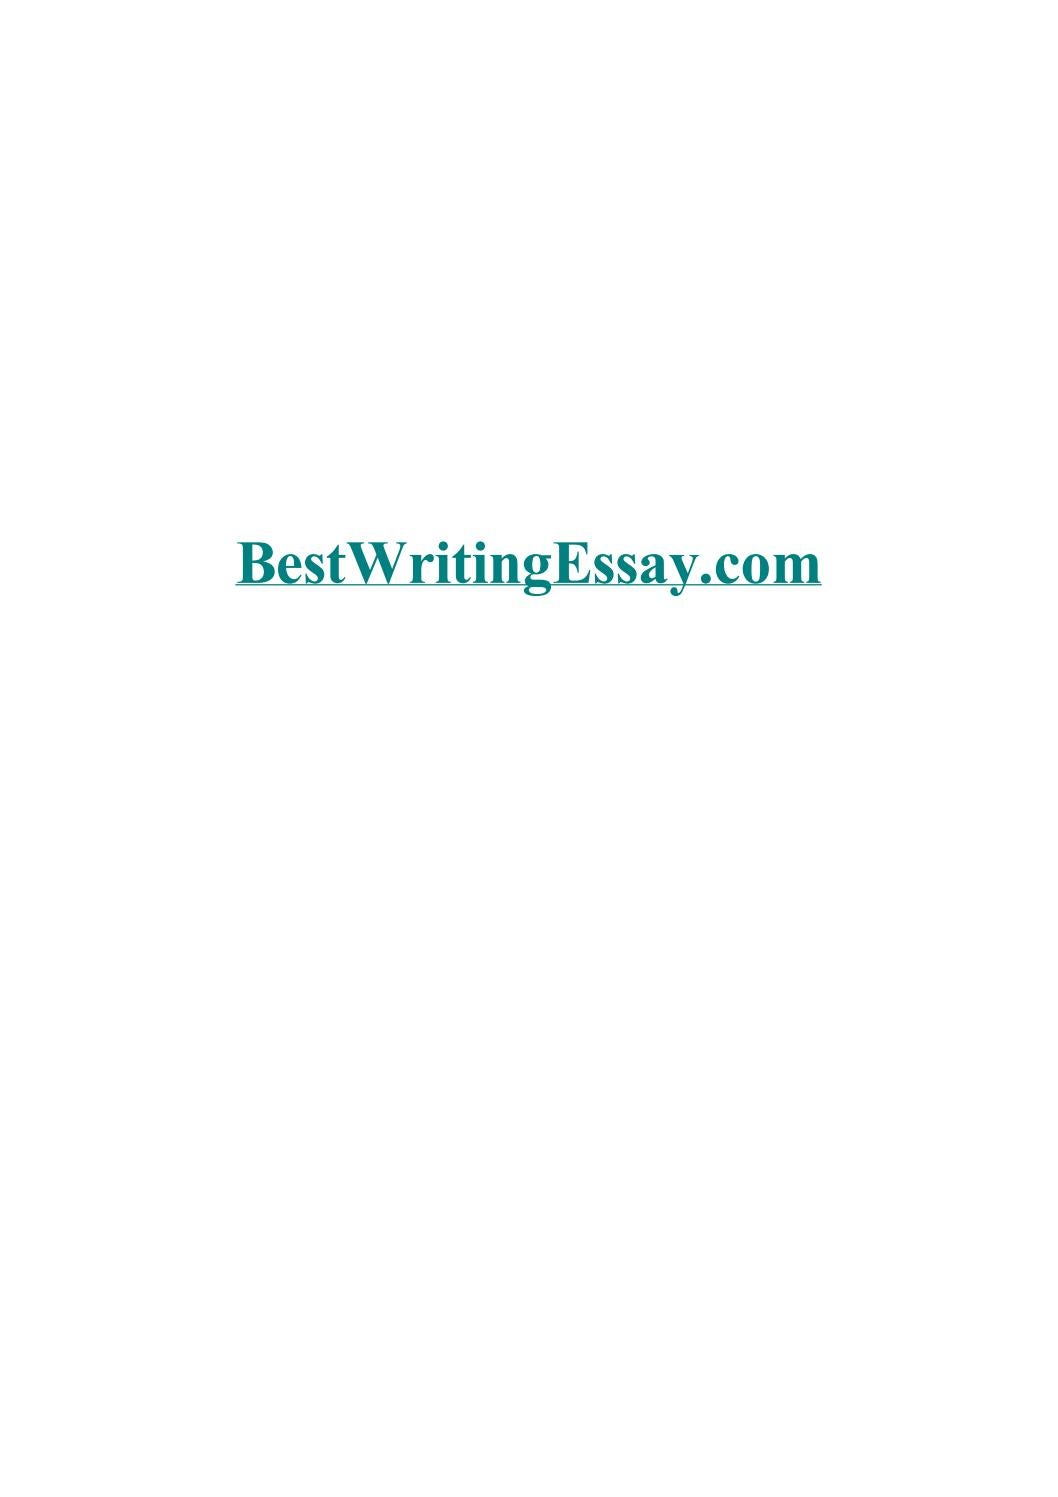 Thesis Generator For Essay  Sample Essay Paper also Essay Time Management Good Essay Topics For High School Students By Cherrieeieai  Argumentative Essay Topics High School